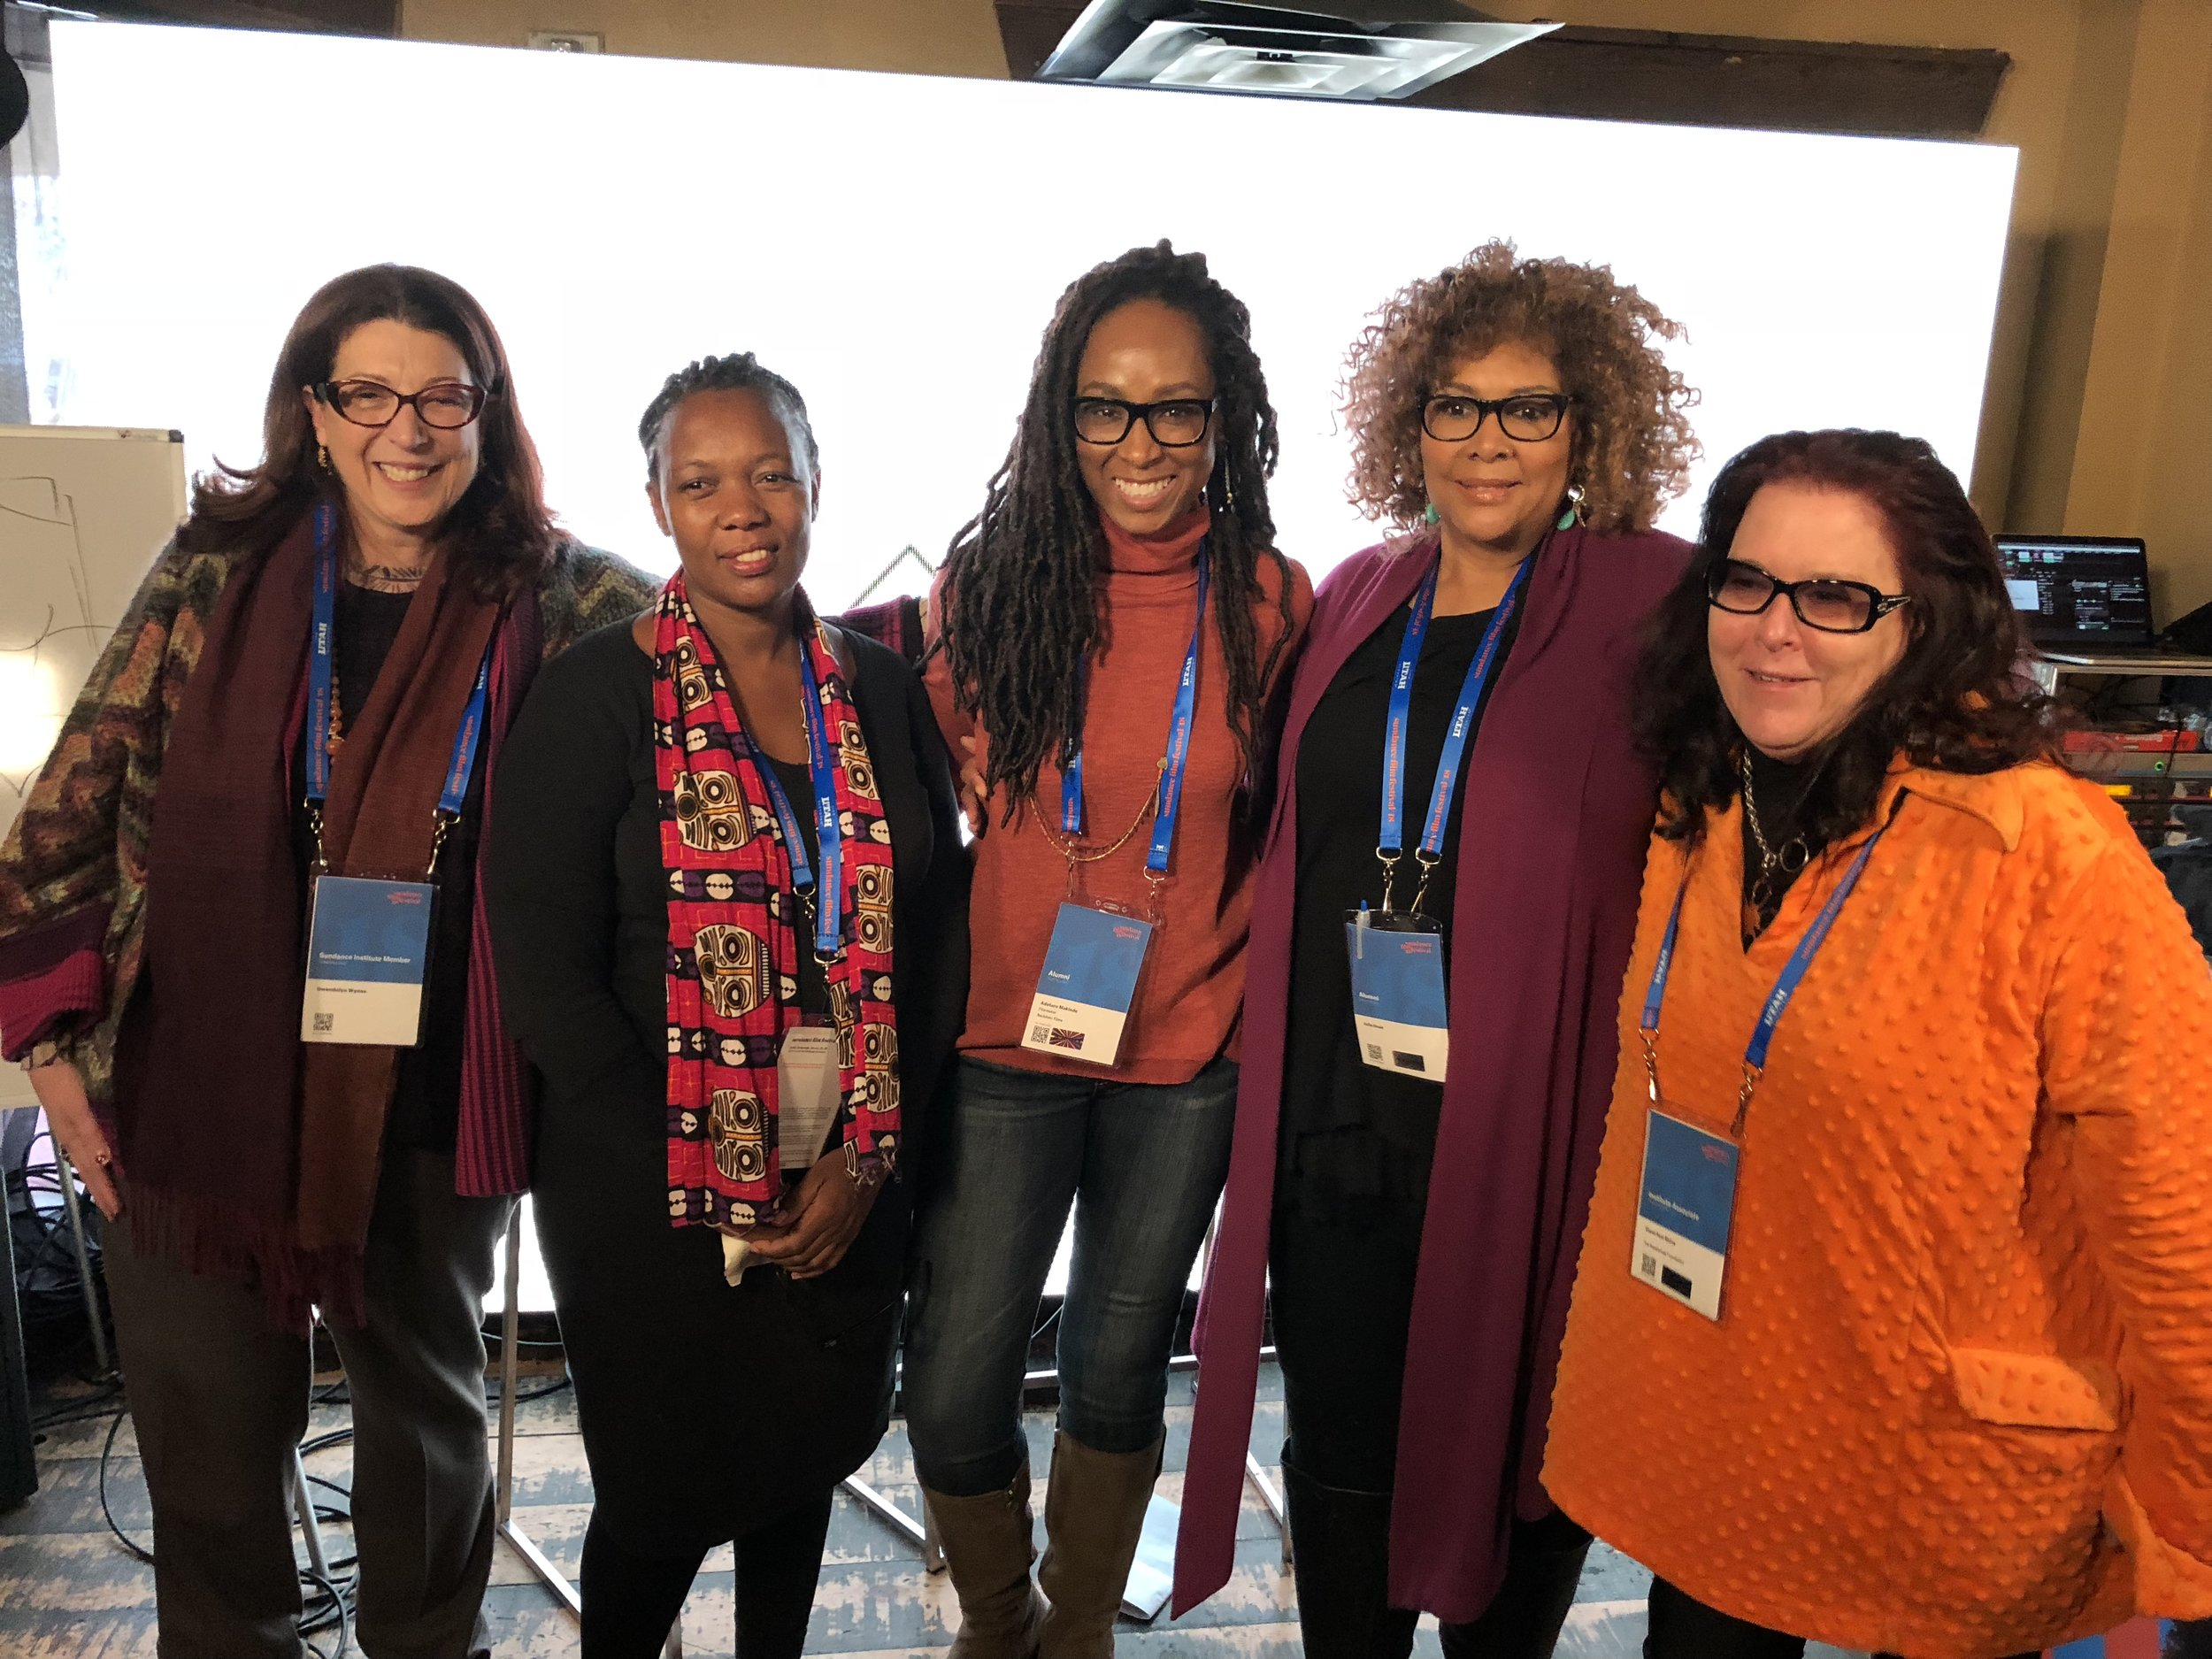 Sundance 2018 - Women In Charge: Through a New Lens |Eos World Fund launches at Blackhouse FoundationL to R: Gwen Wynne, Bridget Pickering, Adetoro Makinde, Julie Dash, Carol ShineTHE BLACKHOUSE FOUNDATIONHosts the Launch of EOS WORLD FUNDJanuary 19, 2018 from 11am - 1pm